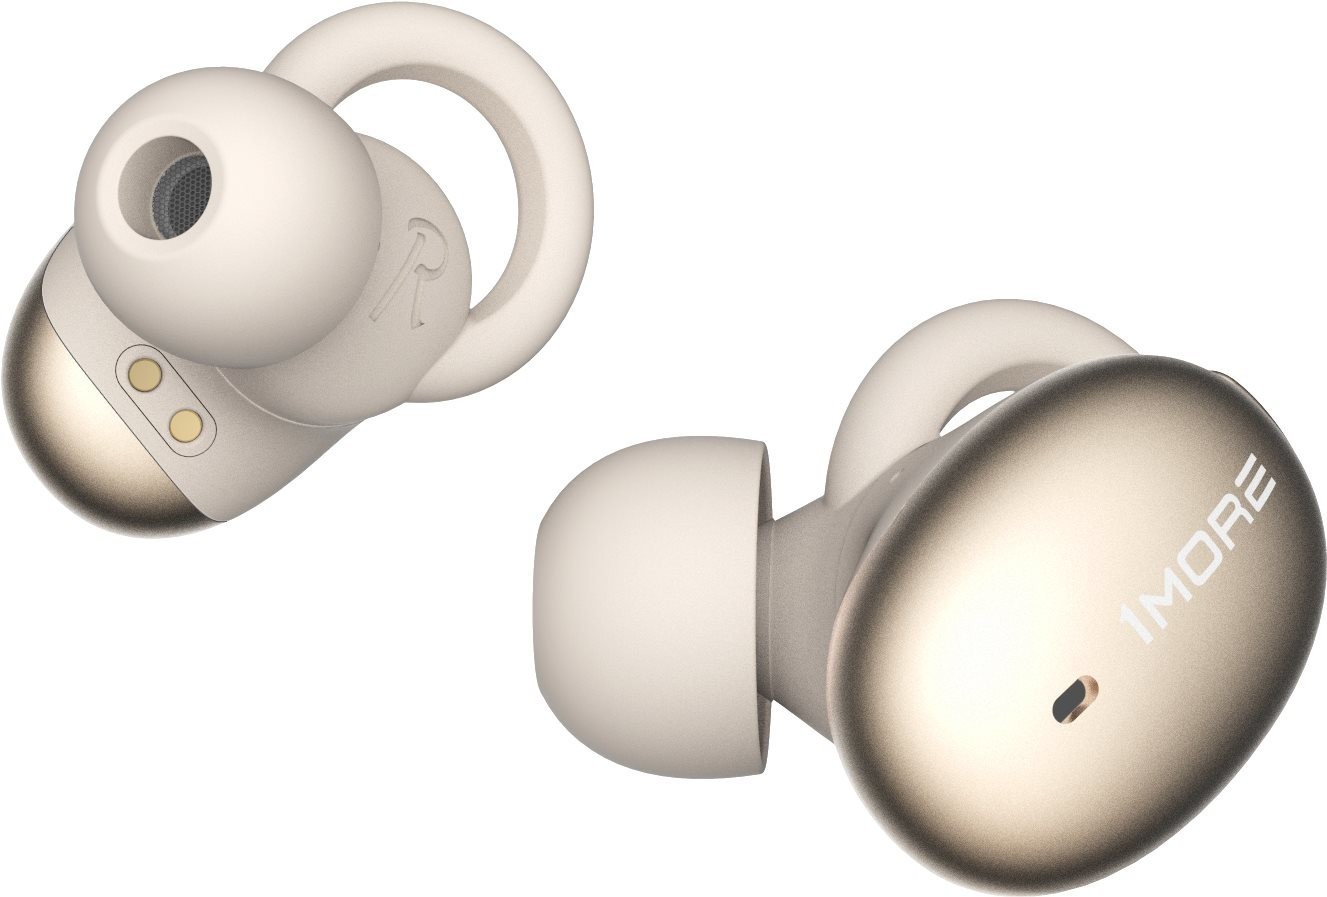 Image of 1More Stylish True Wireless Earbuds E1026BT-1 (Gold)